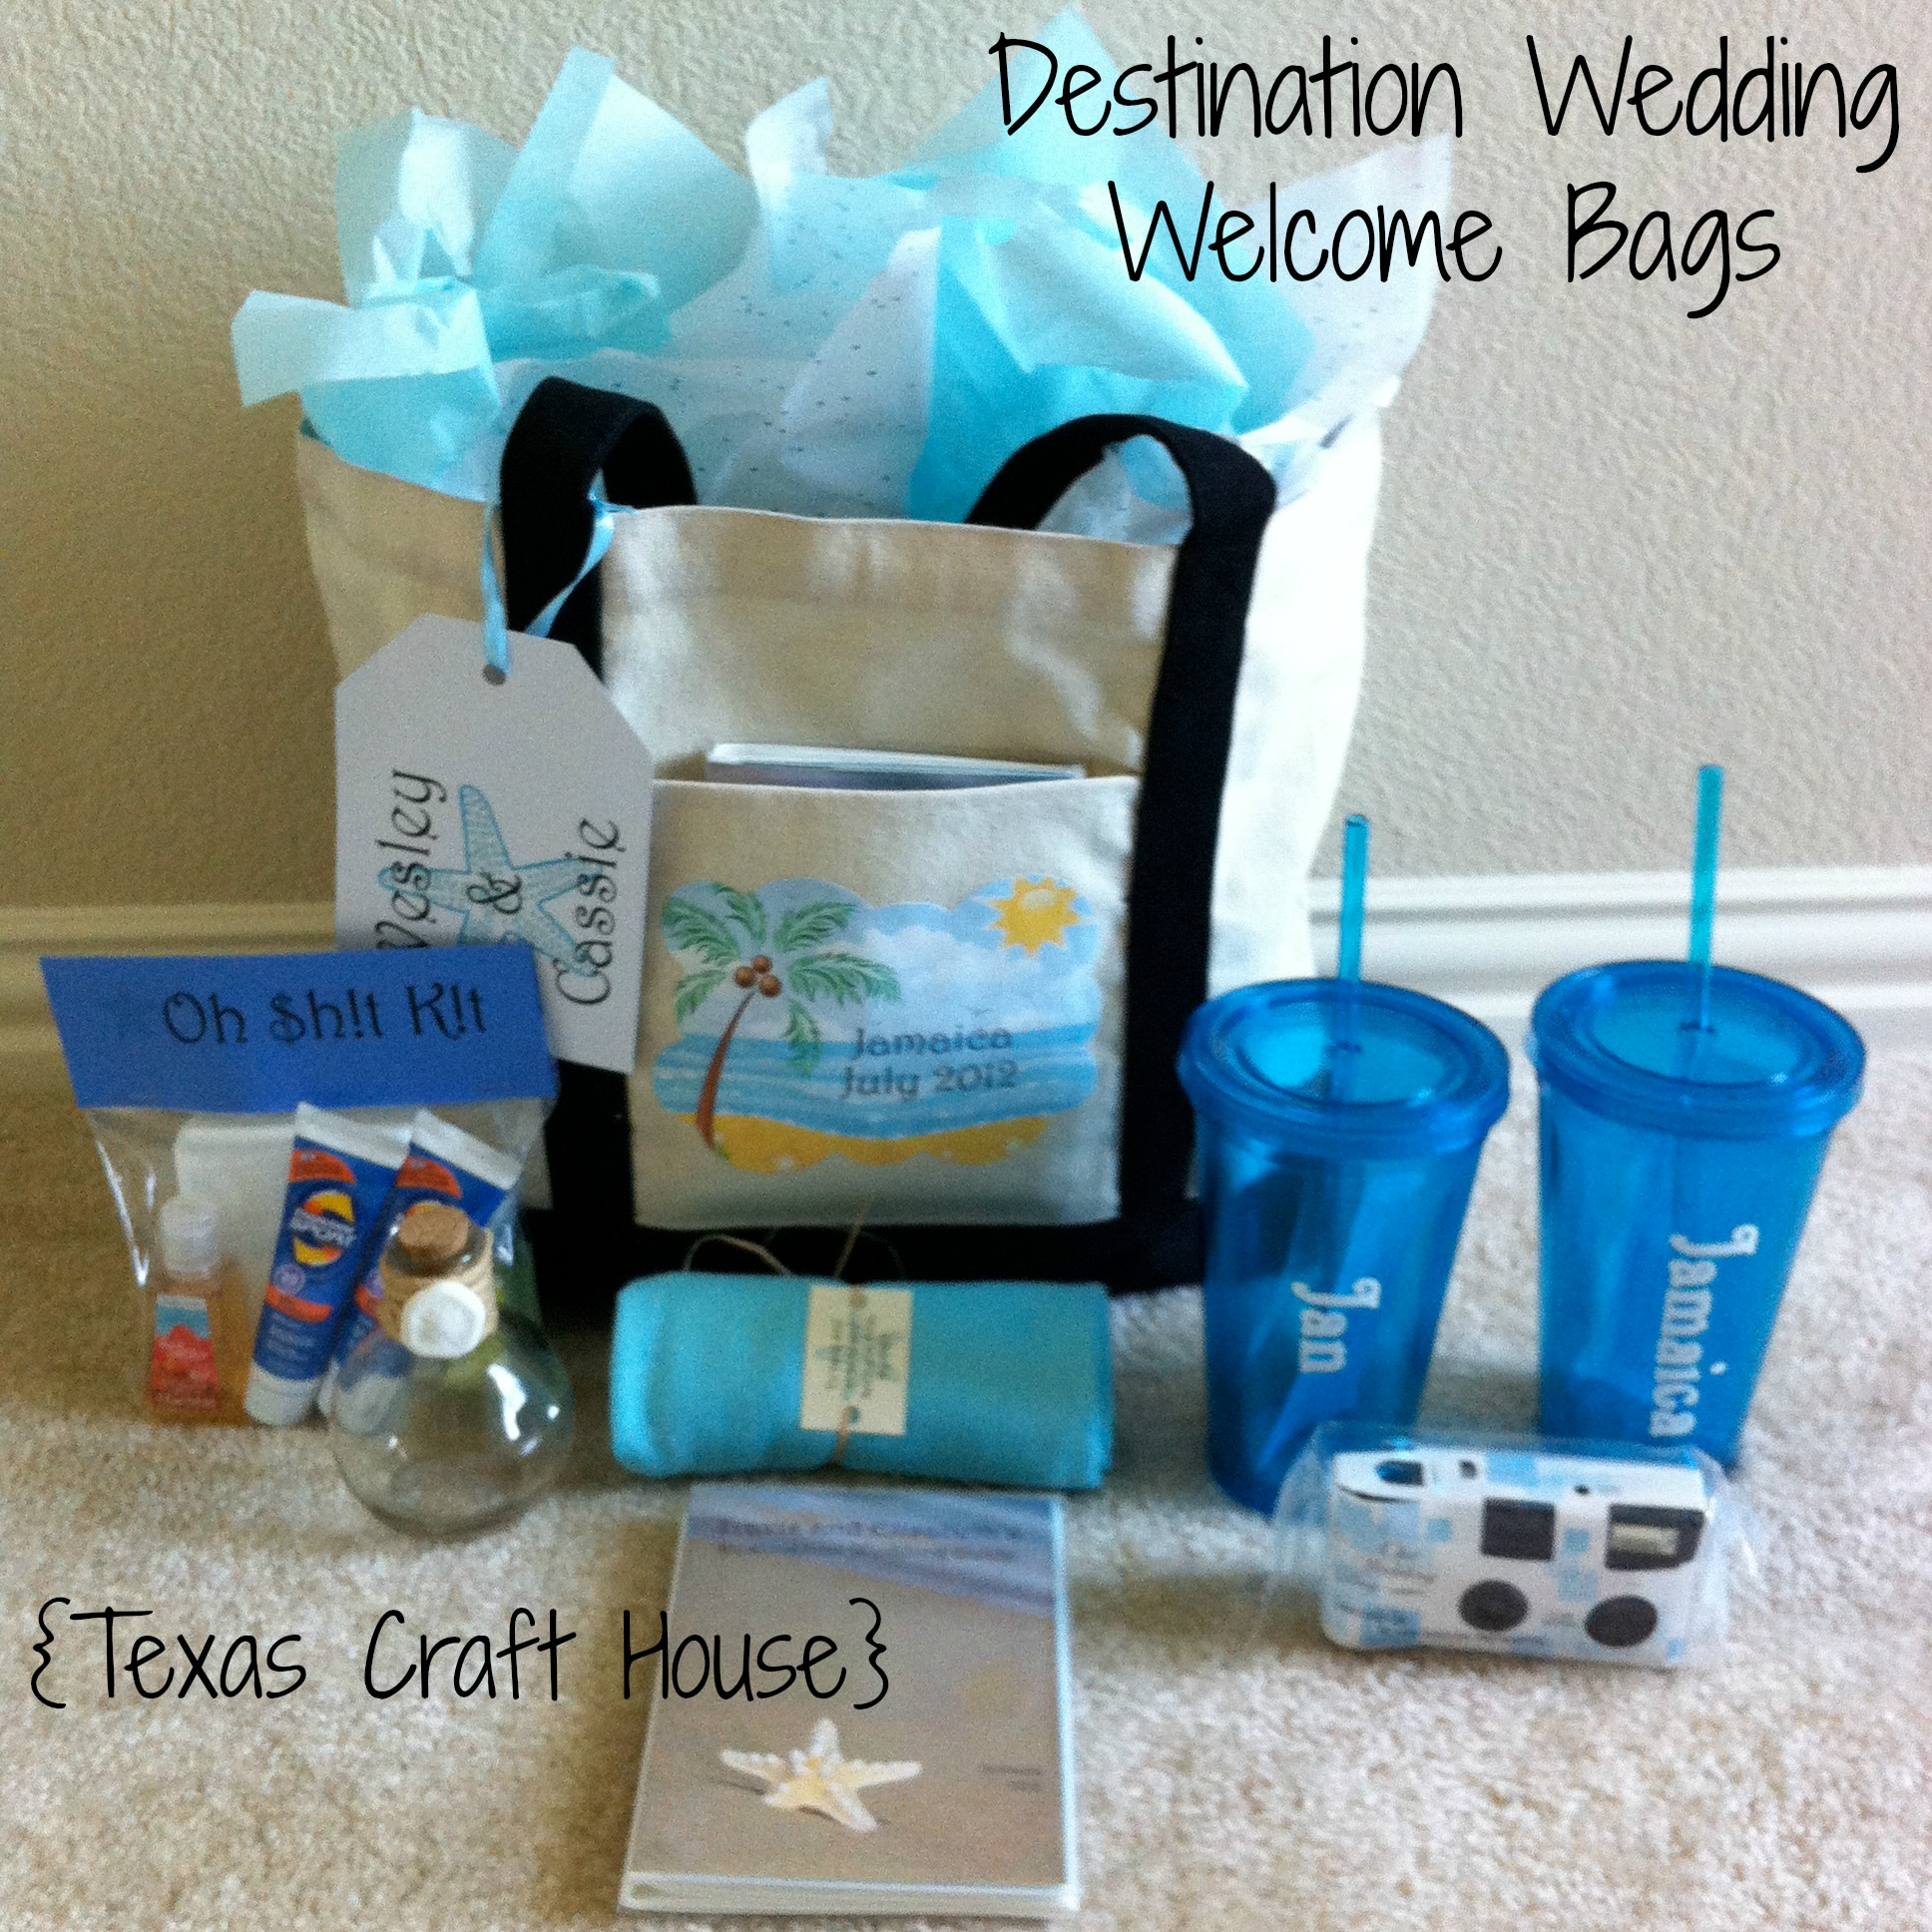 Destination Wedding Welcome BagsDIY Texas Craft House